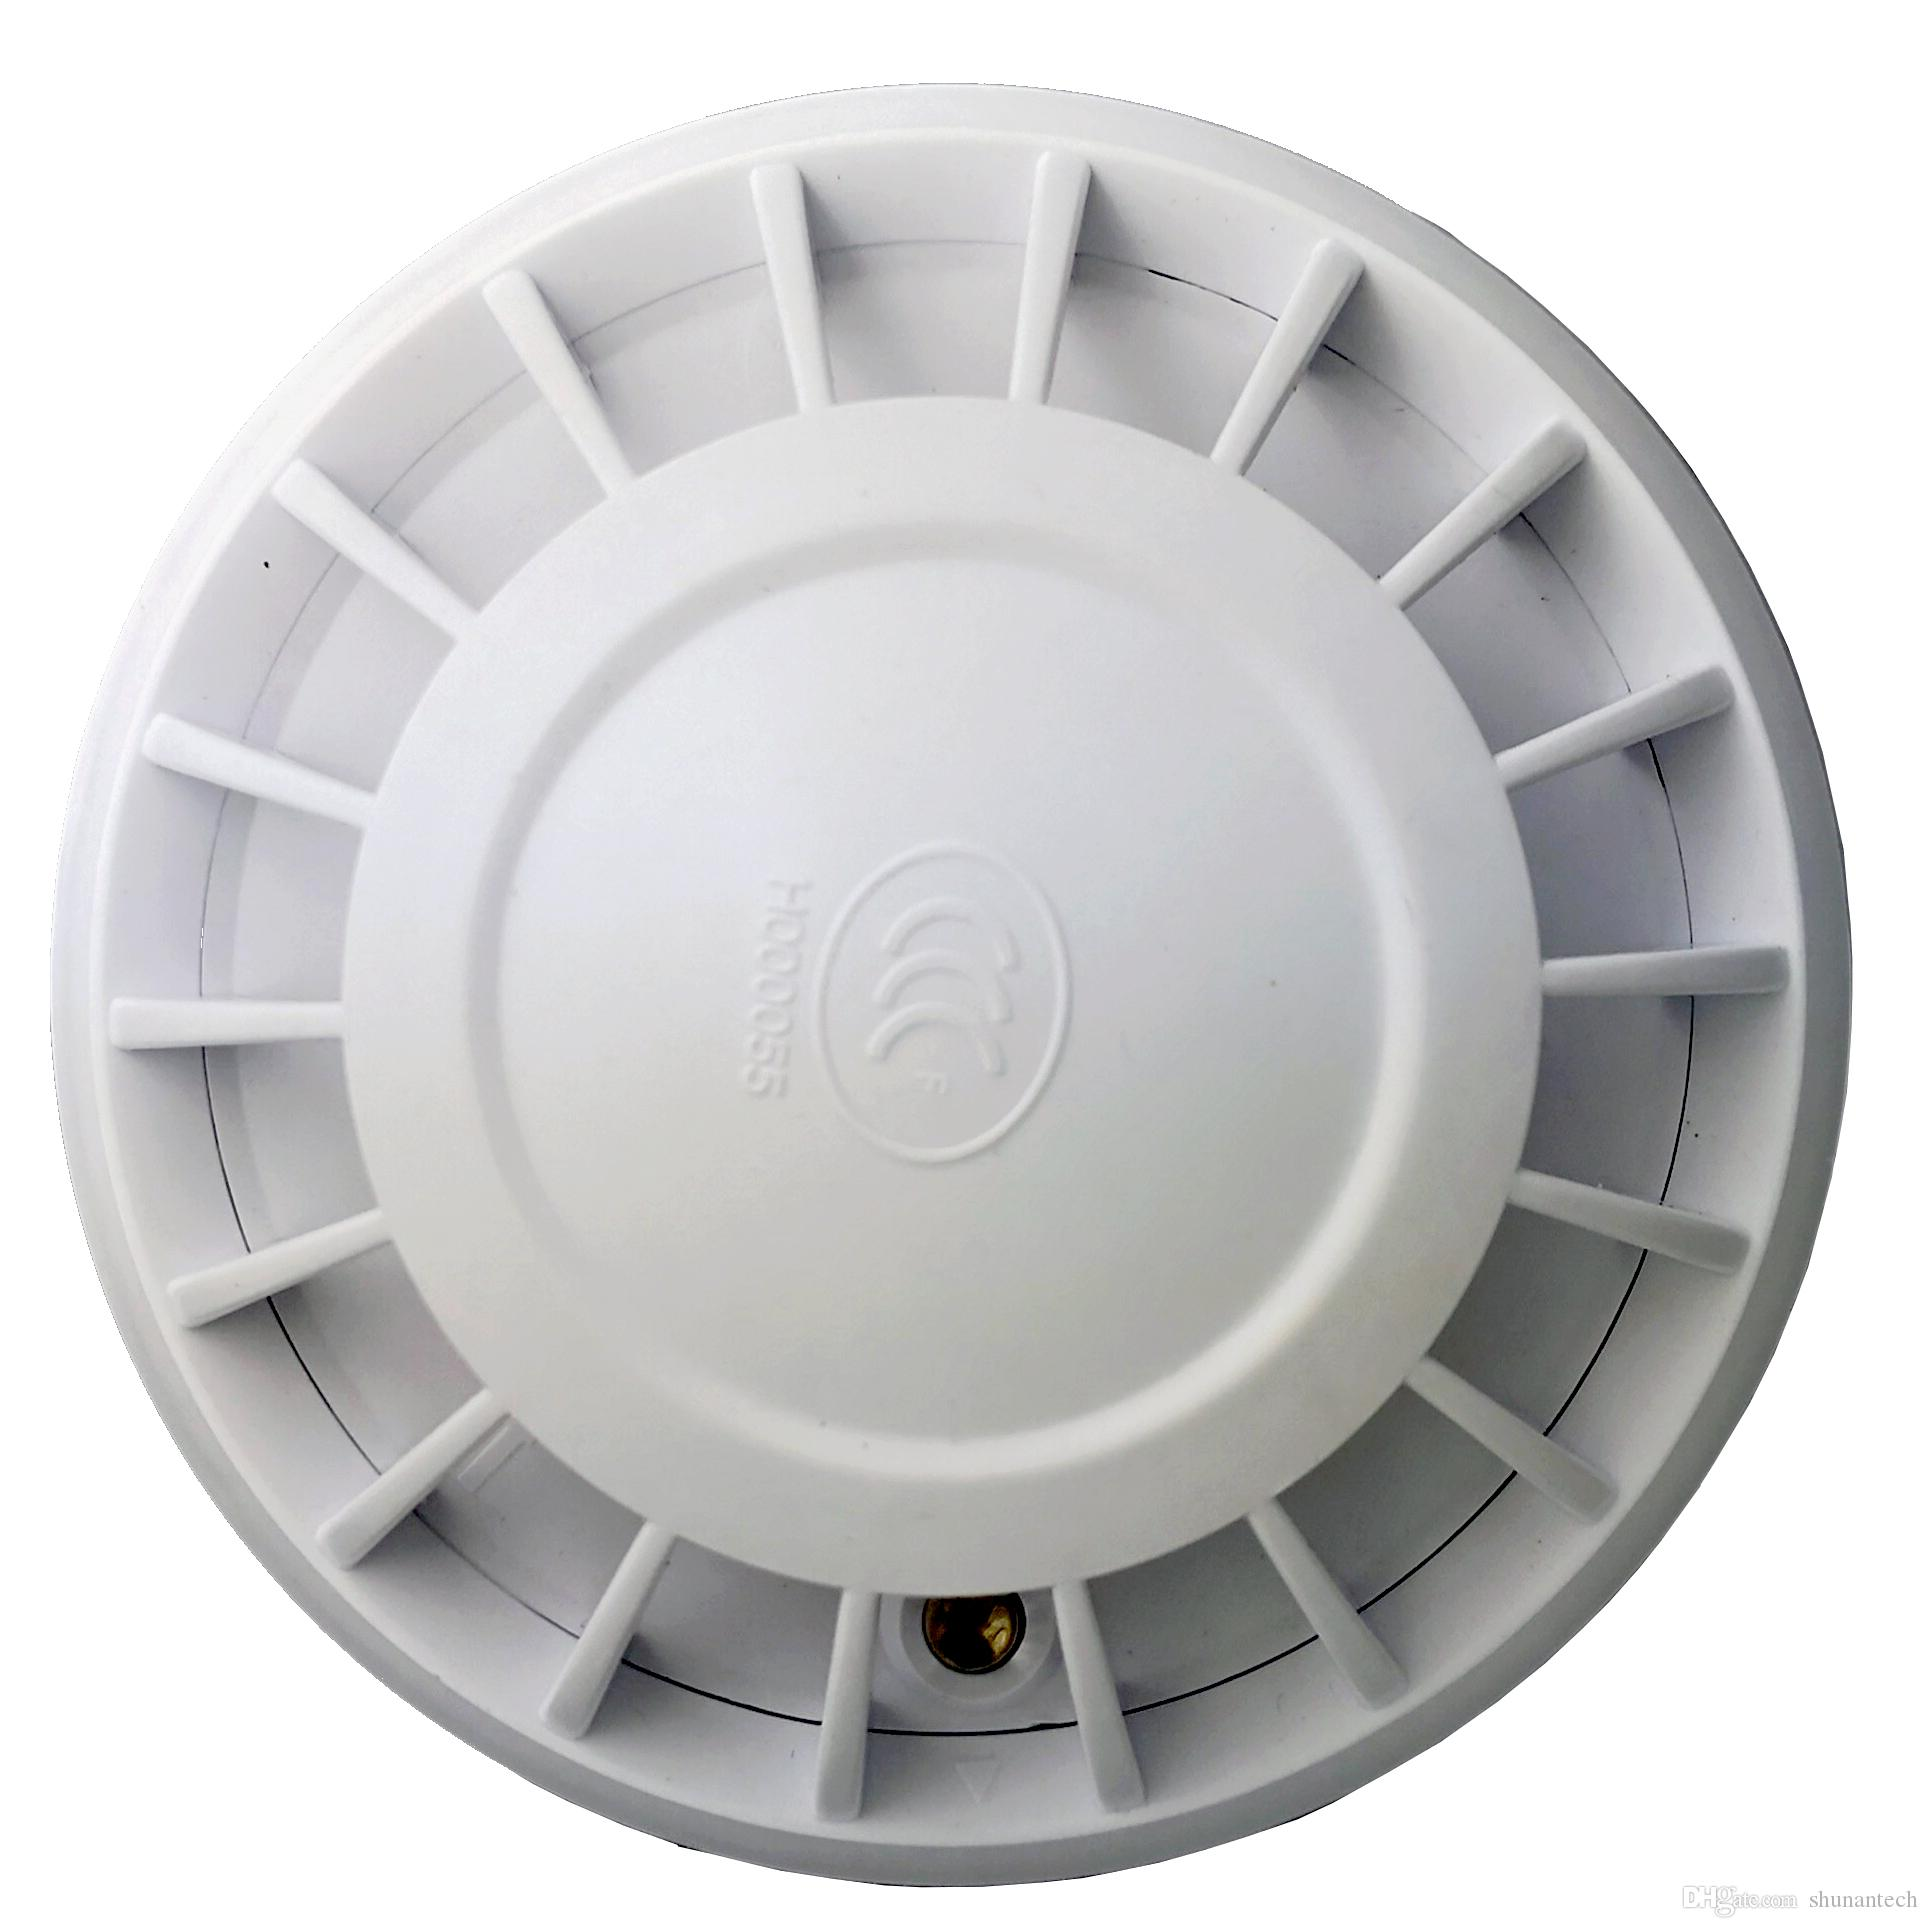 hight resolution of 2019 addressable smoke detector smoke alarm for fire alarm control panel from shunantech 7 54 dhgate com